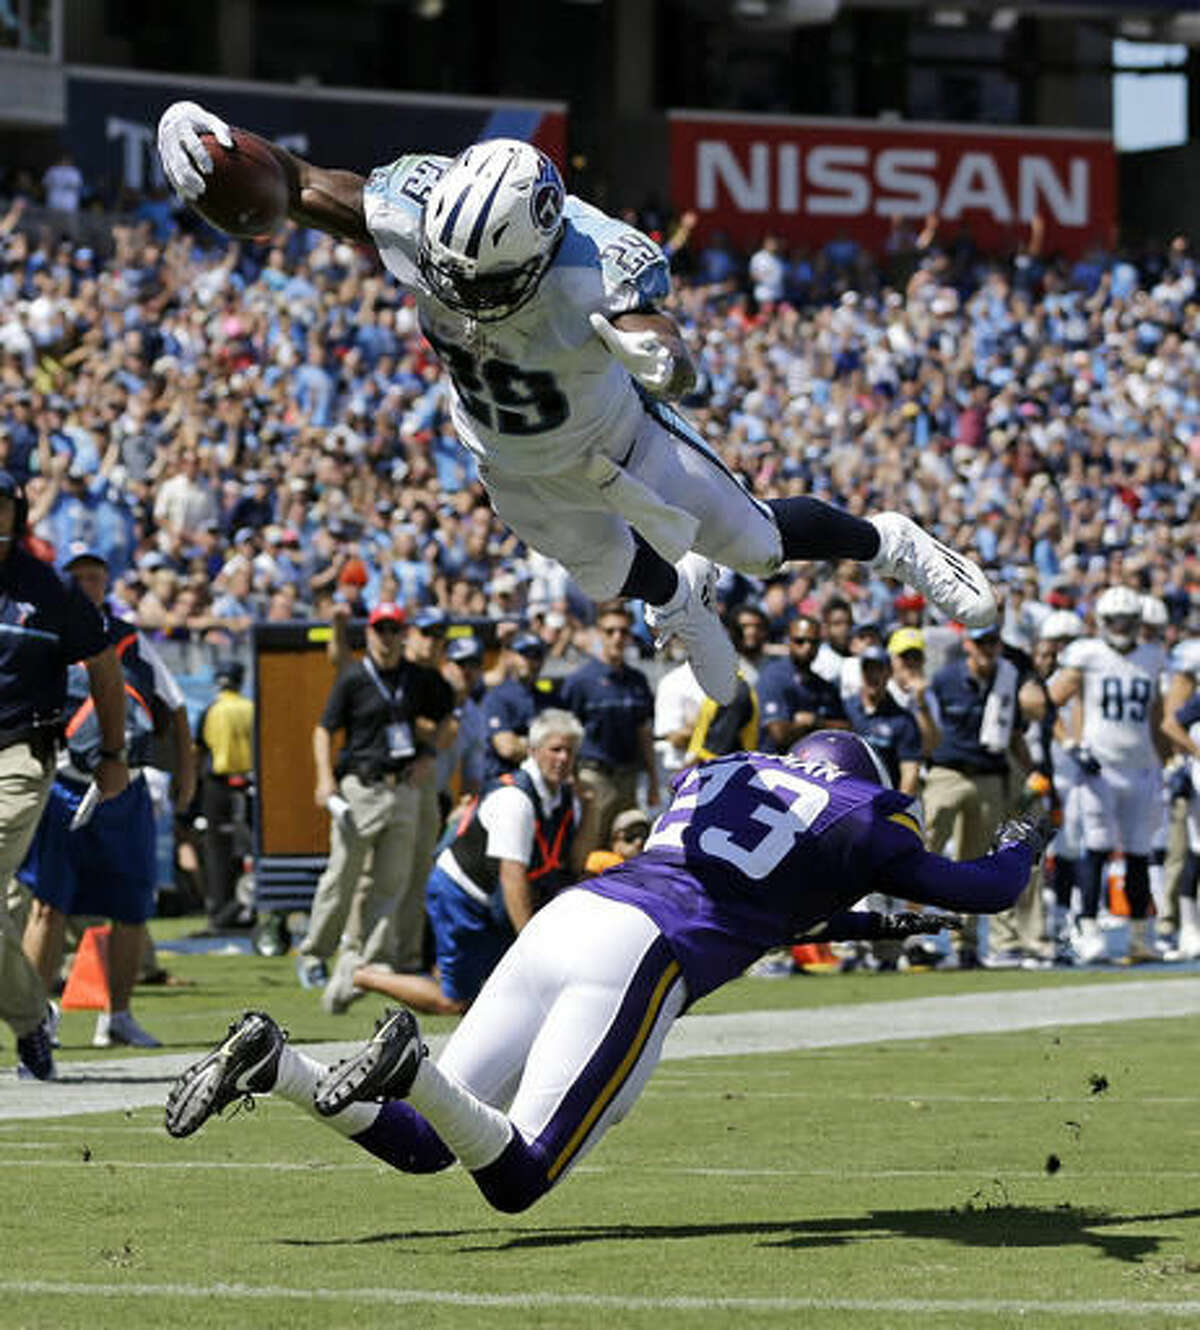 FILE - In this Sept. 11, 2016, file photo, Tennessee Titans running back DeMarco Murray (29) dives over Minnesota Vikings cornerback Terence Newman (23) as Murray scores a touchdown on a 6-yard pass reception in the first half of an NFL football game, in Nashville, Tenn. The Jaguars face the Titans in an NFL game on Thursday night in Nashville. (AP Photo/Weston Kenney, File)